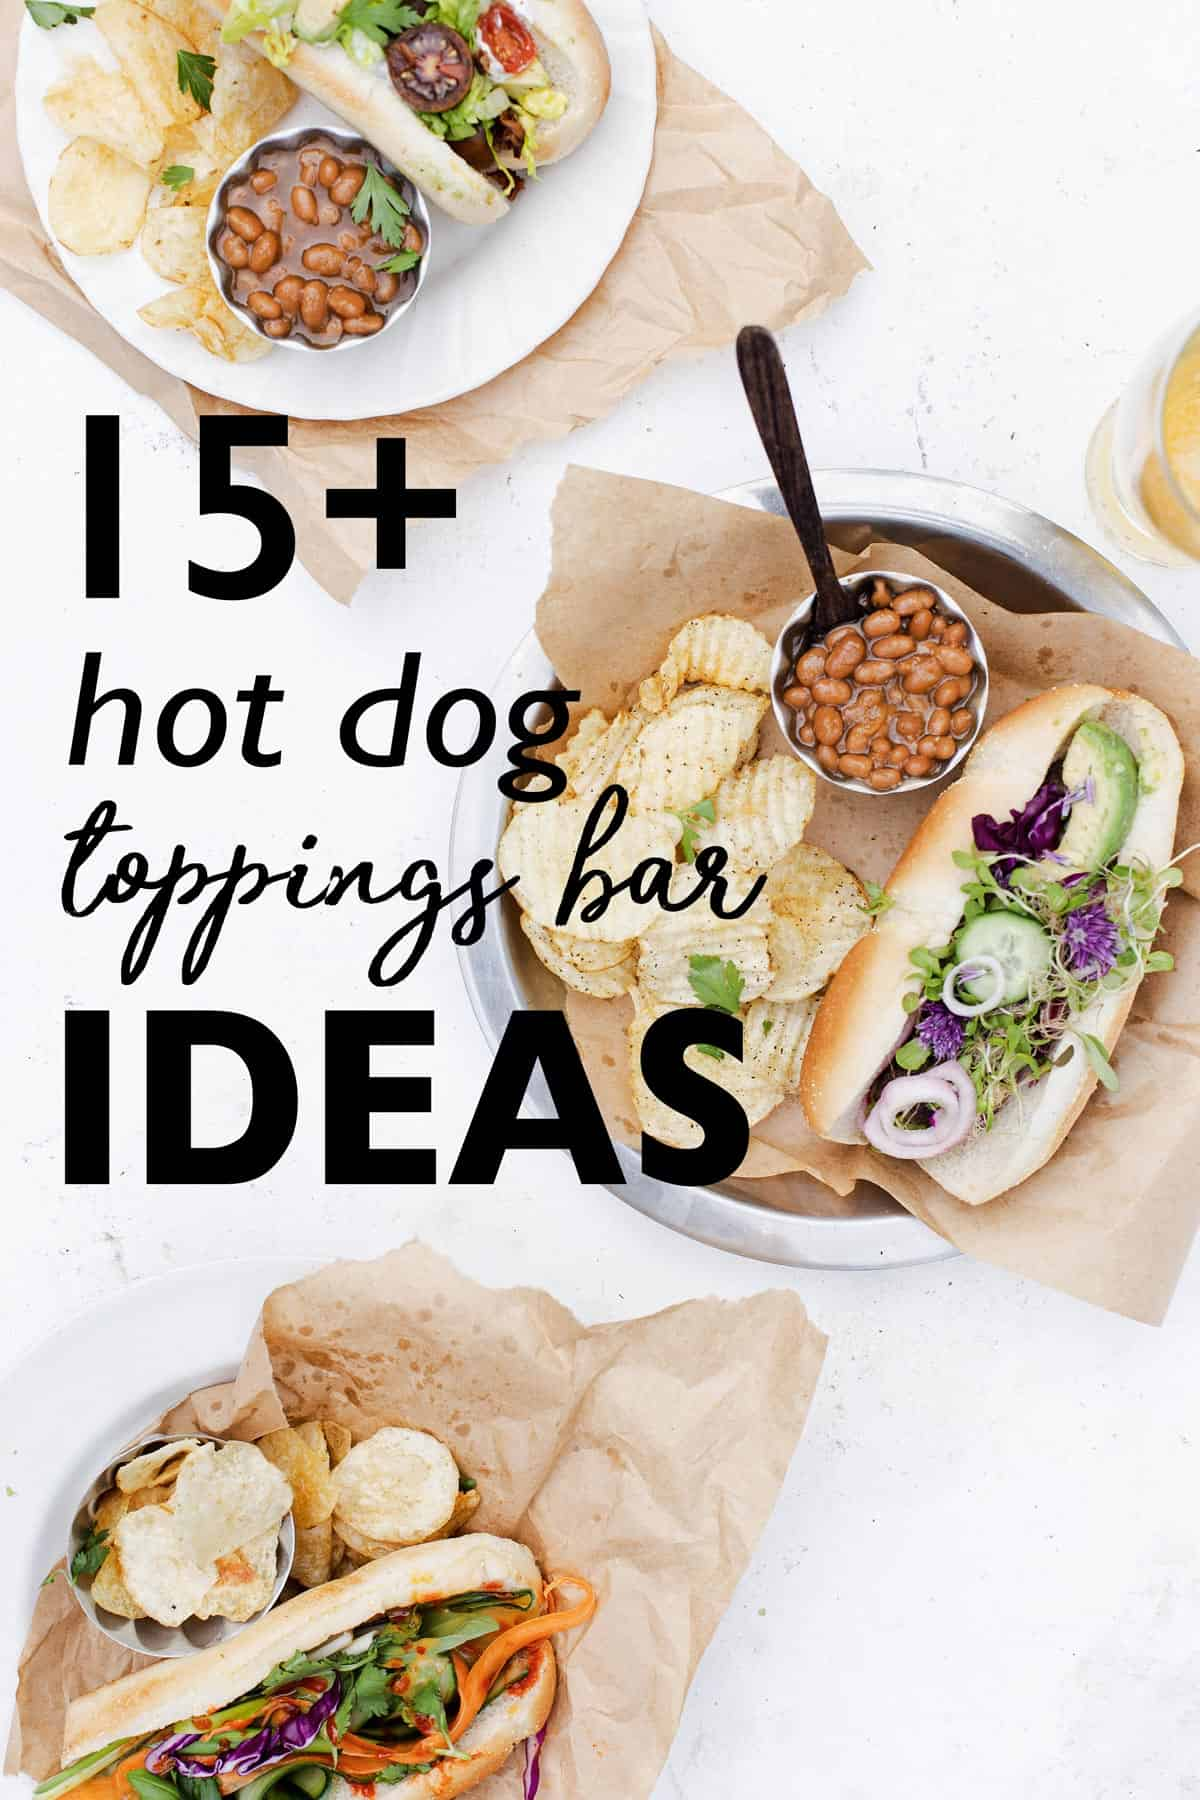 This Ultimate List of Hot Dog Toppings Ideas makes it so easy to throw together an easy hot dog bar food station at your next party! hot dog toppings | hot dog ideas | hot dog bar | gourmet hot dog recipes | hot dog menu ideas